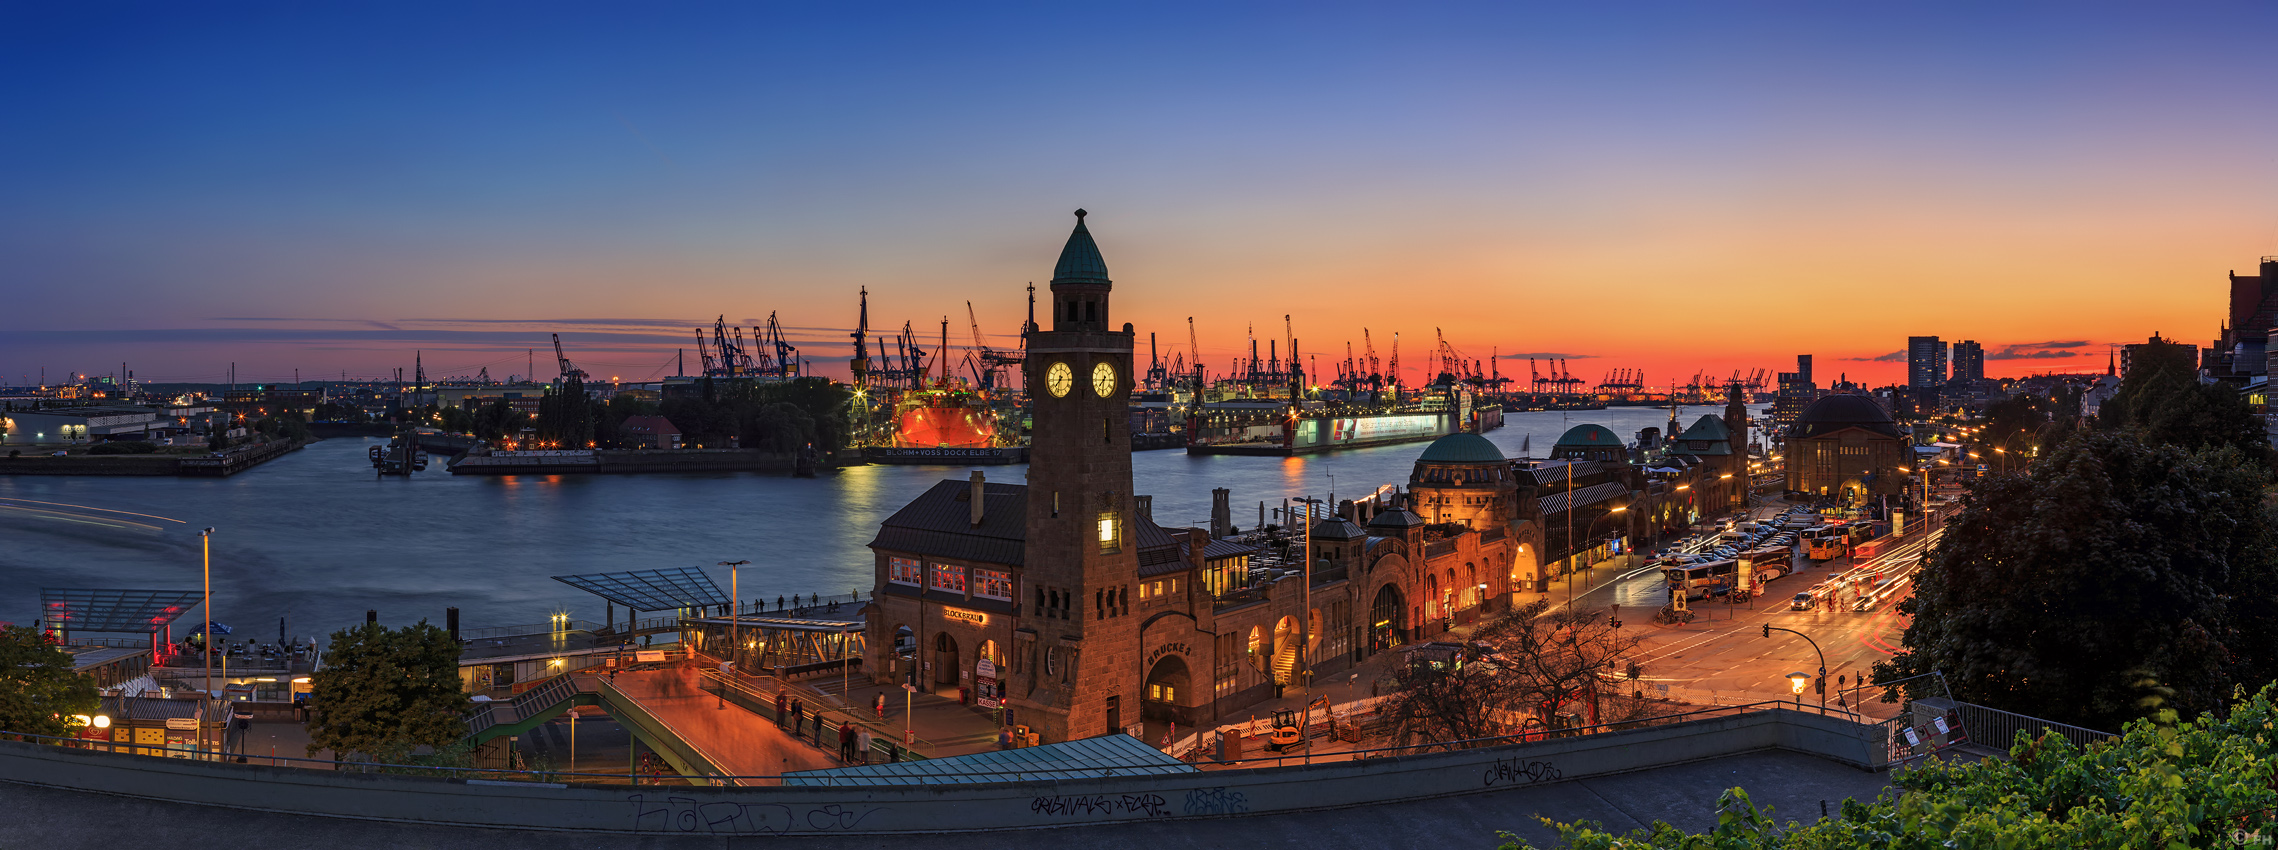 hamburg panorama skyline sonnenuntergang sunset hafen landungsbr cken blaue. Black Bedroom Furniture Sets. Home Design Ideas